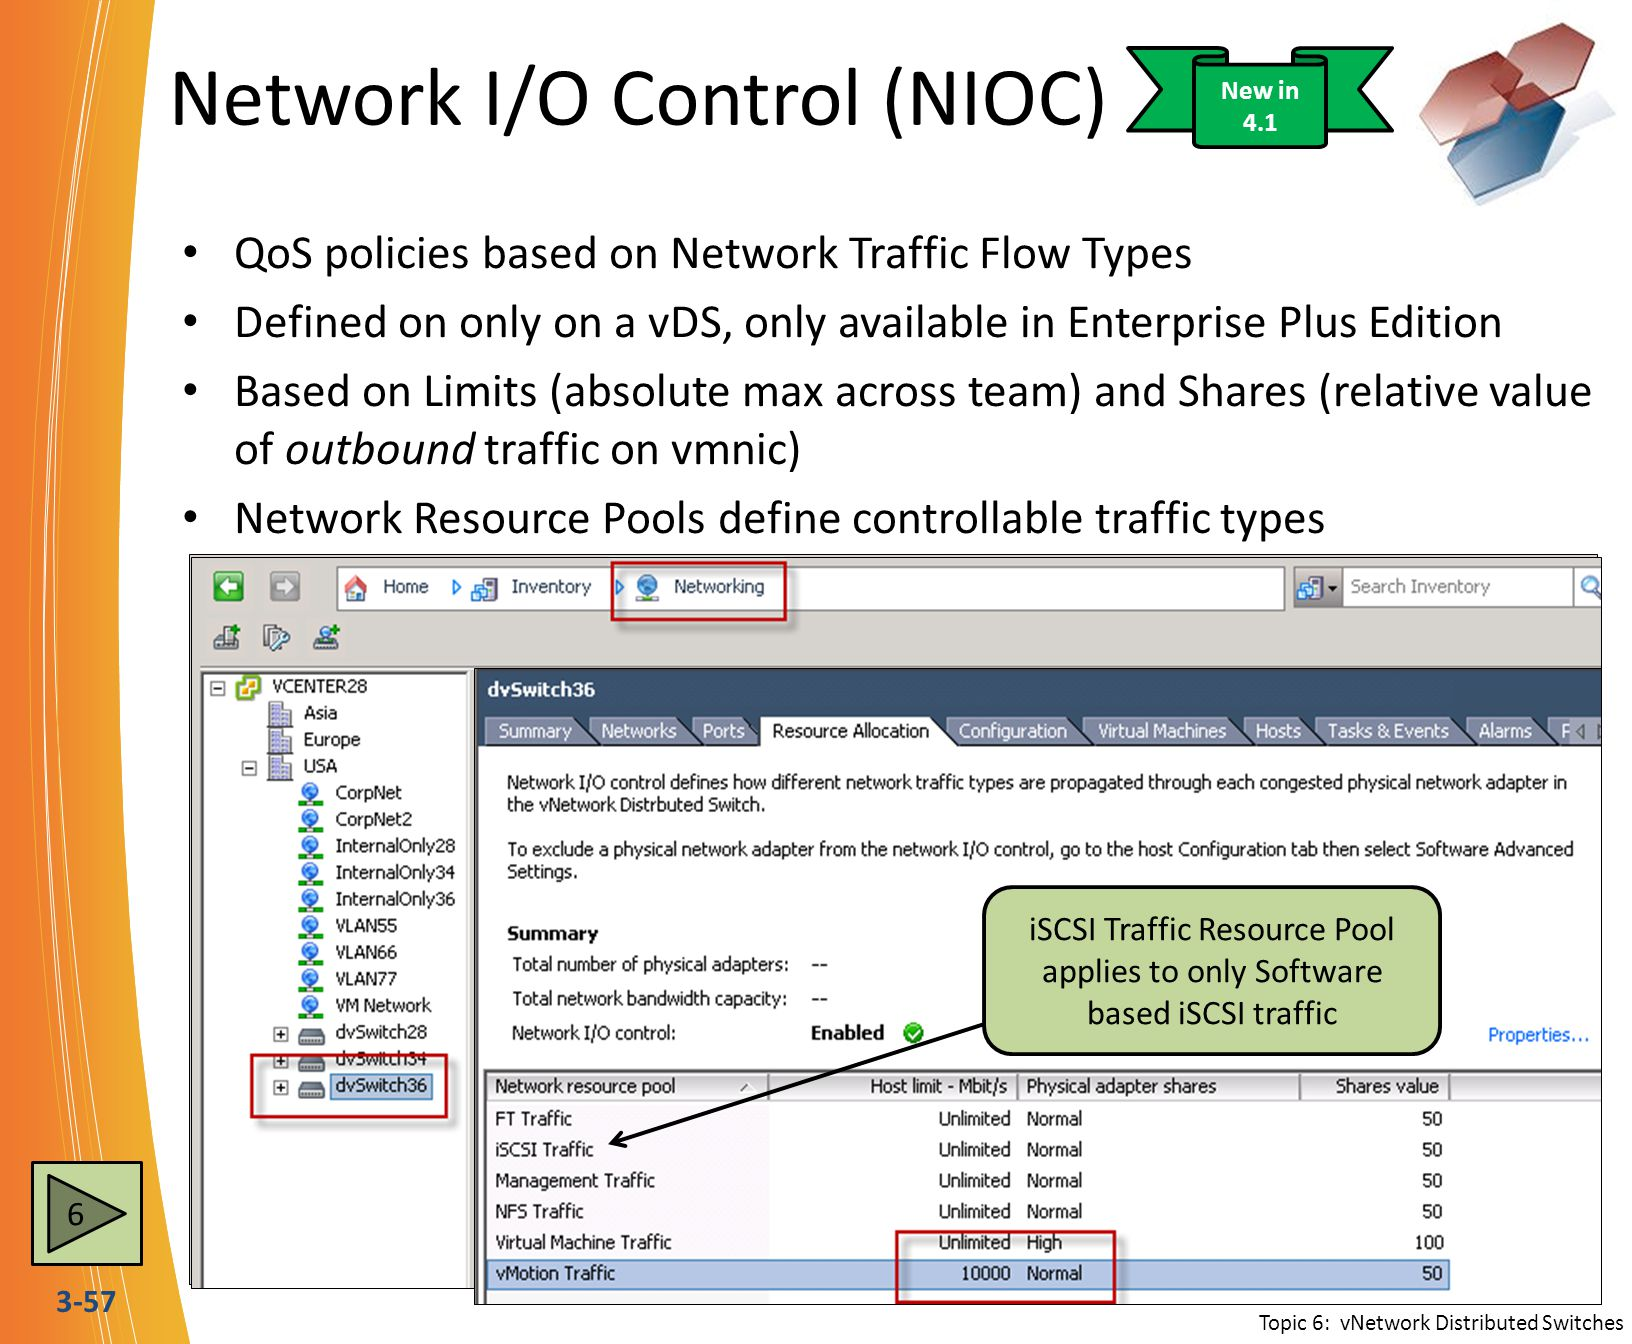 3-57 Network I/O Control (NIOC) Topic 6: vNetwork Distributed Switches New in 4.1 Types of Network Traffic Resource Pools iSCSI Traffic Resource Pool